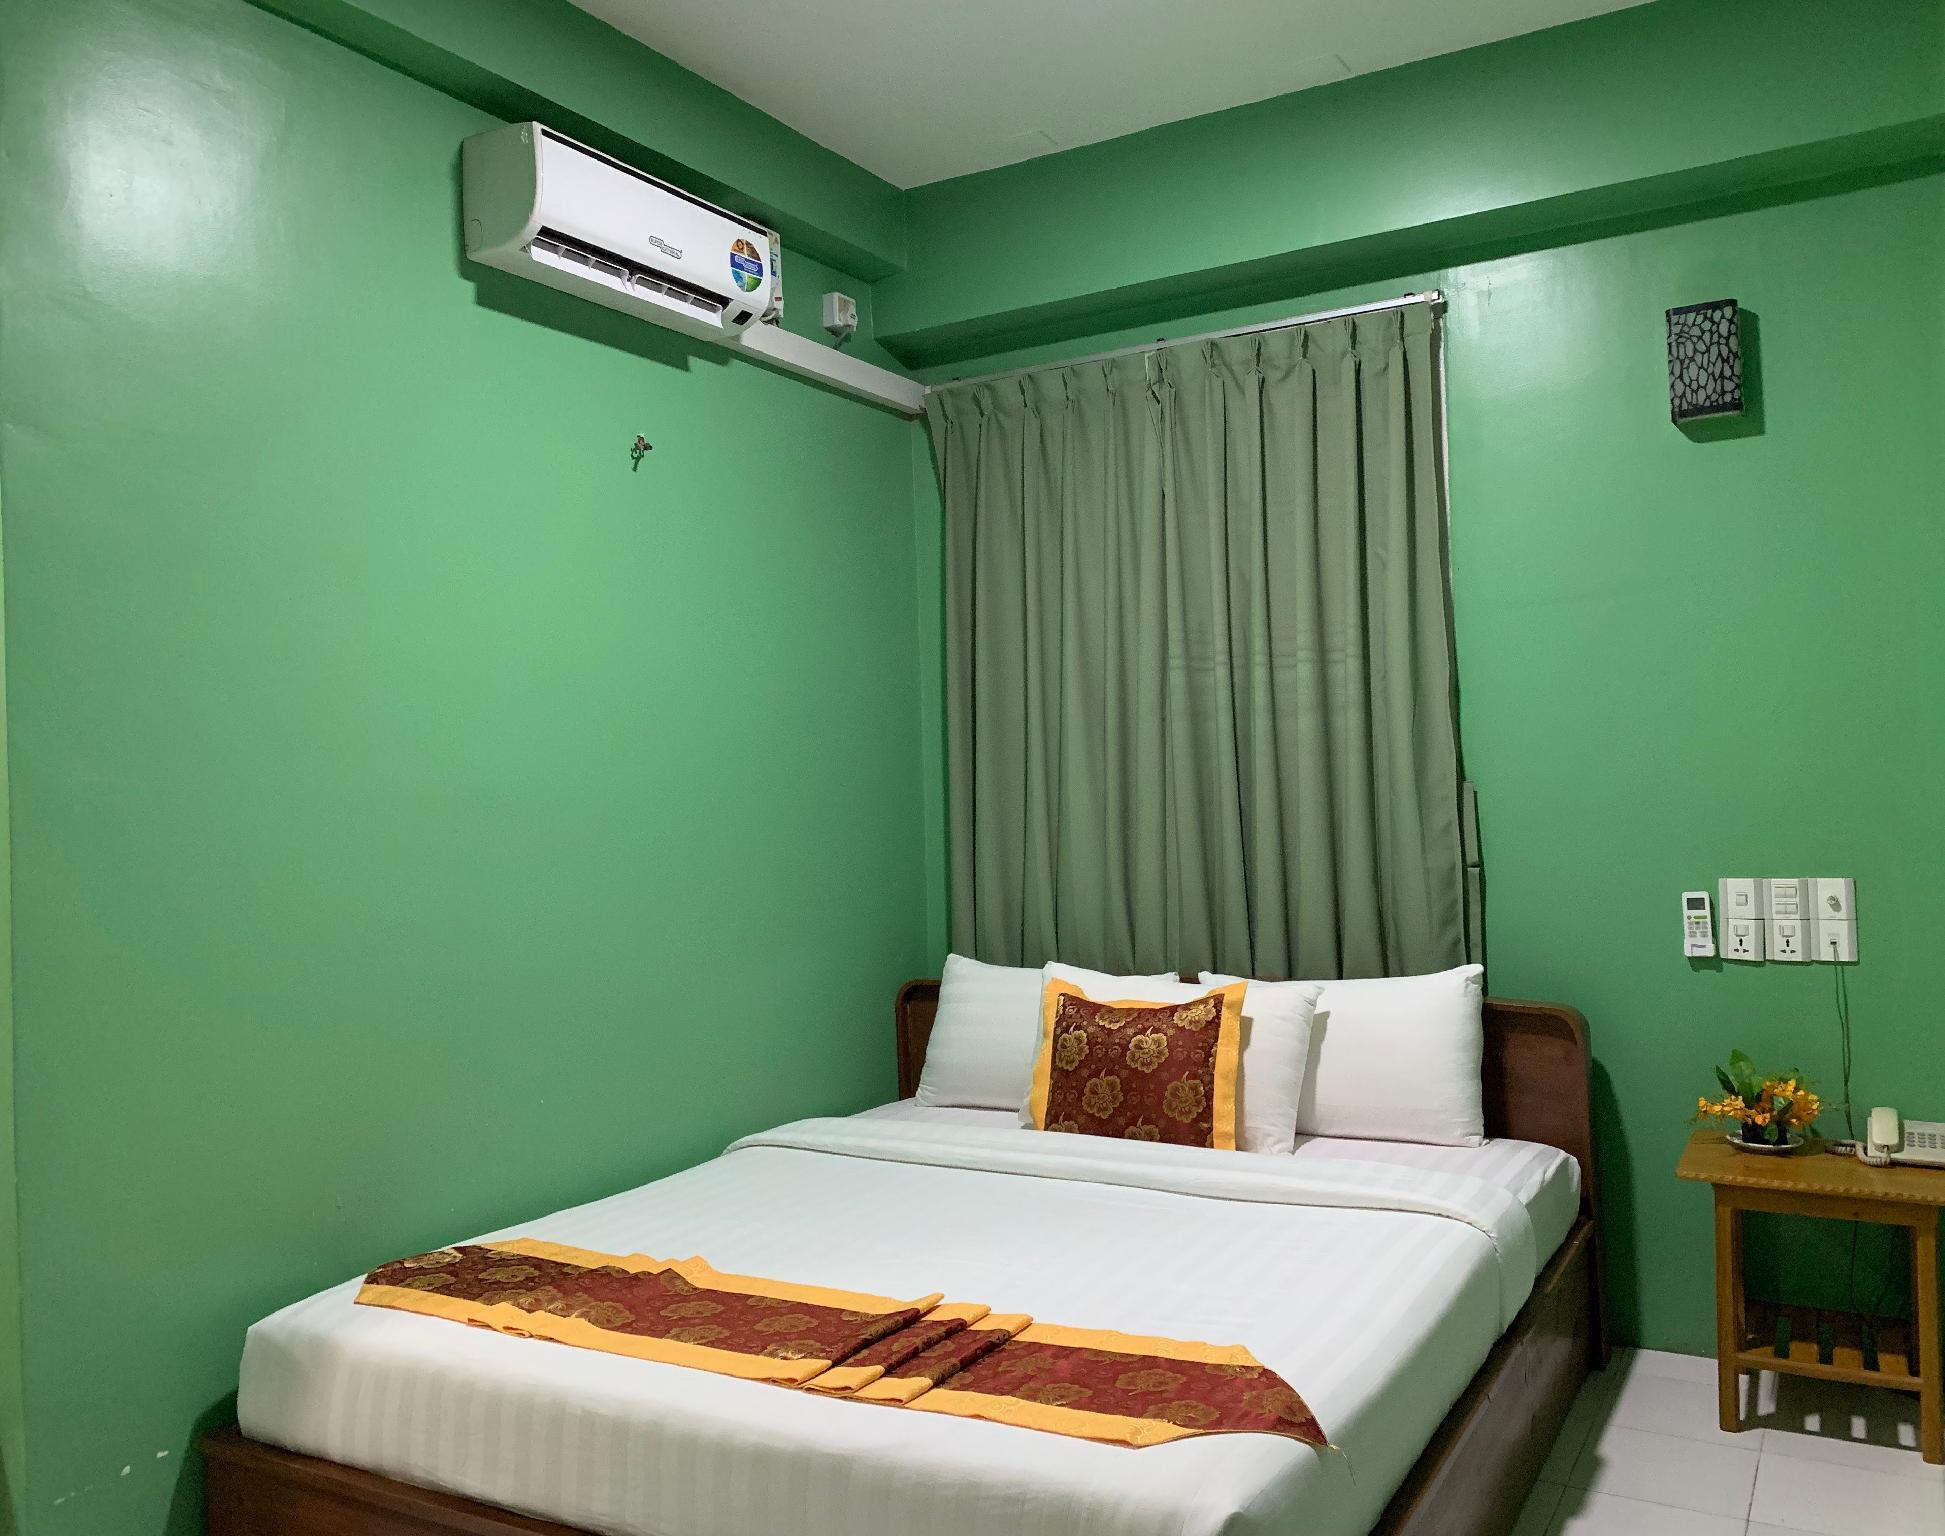 Best Price On View Point Hotel In Aungban Reviews